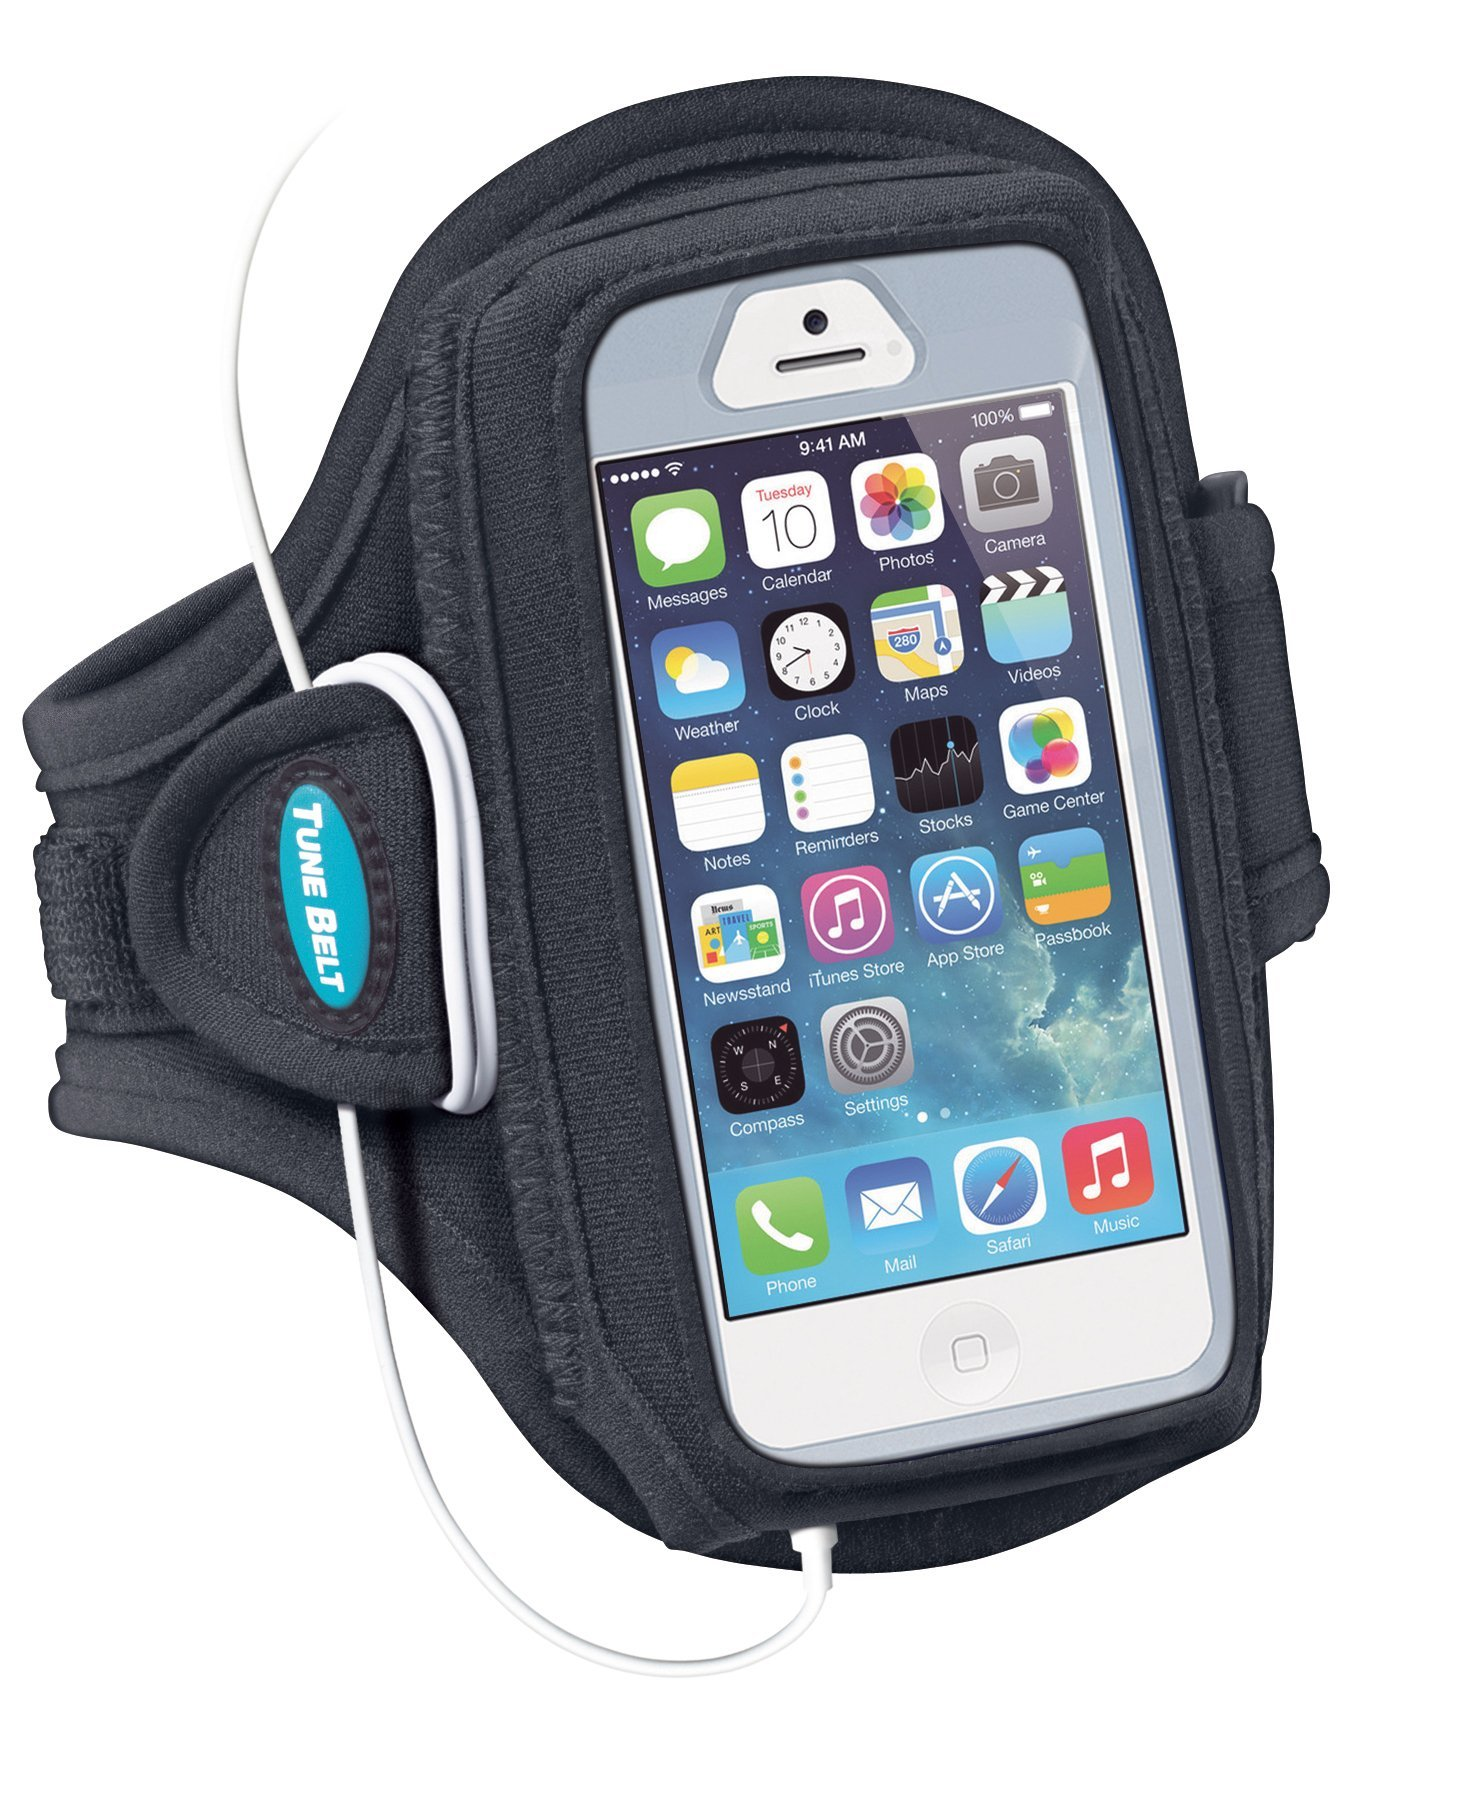 Armband for iPhone SE, 5, 5s, 5c, 4, 4S with OtterBox Defender, Commuter or Other Large Case – Great for Running & Working Out [Black] by Tune Belt (Image #3)